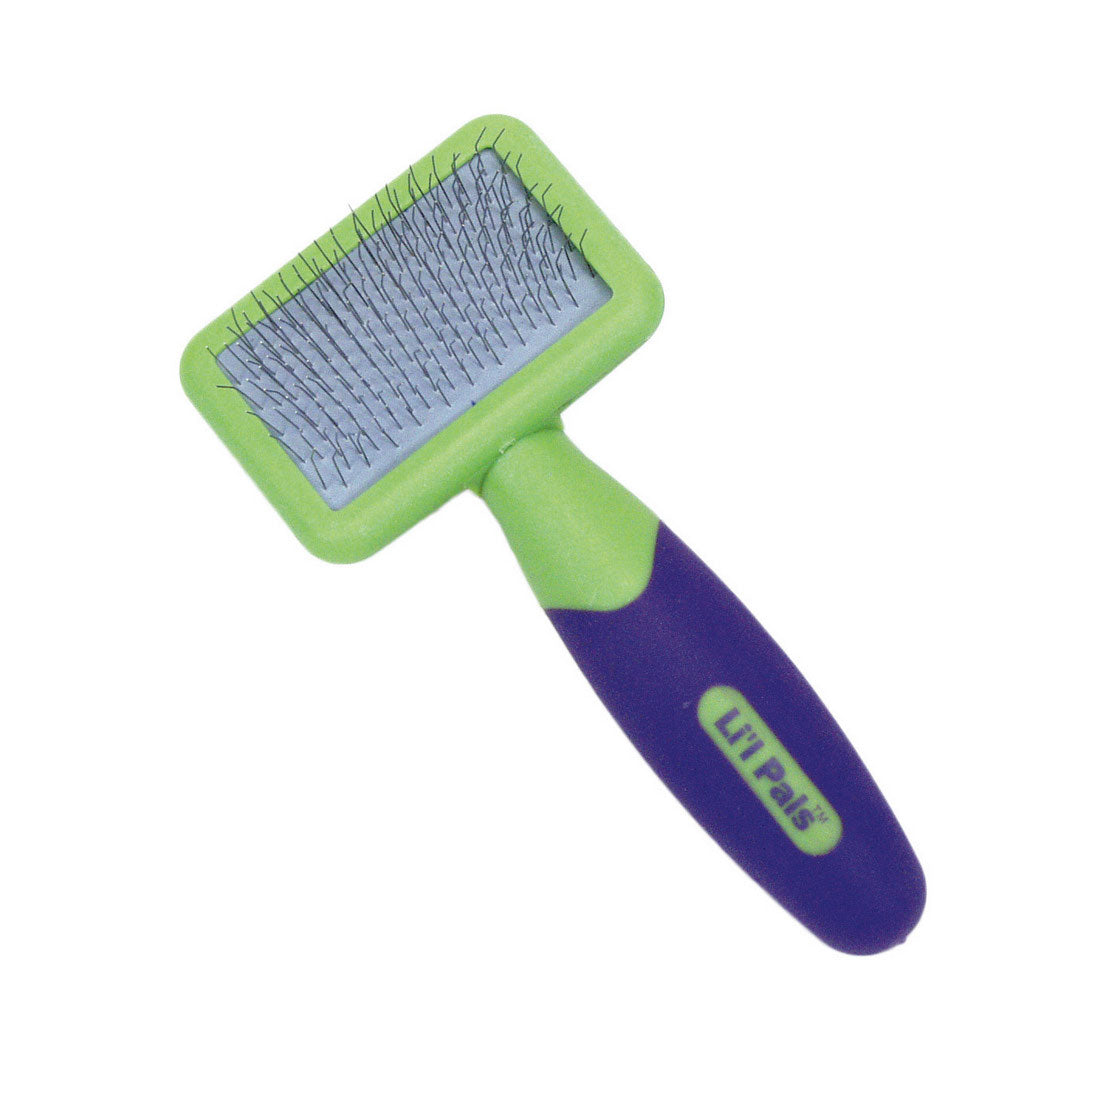 "Coastal Pet Products Lil'l Pals Kitten Slicker Brush with Coated Tips Green / Purple 5"" x 2.3"" x 1"" Cat Grooming - London the Local"